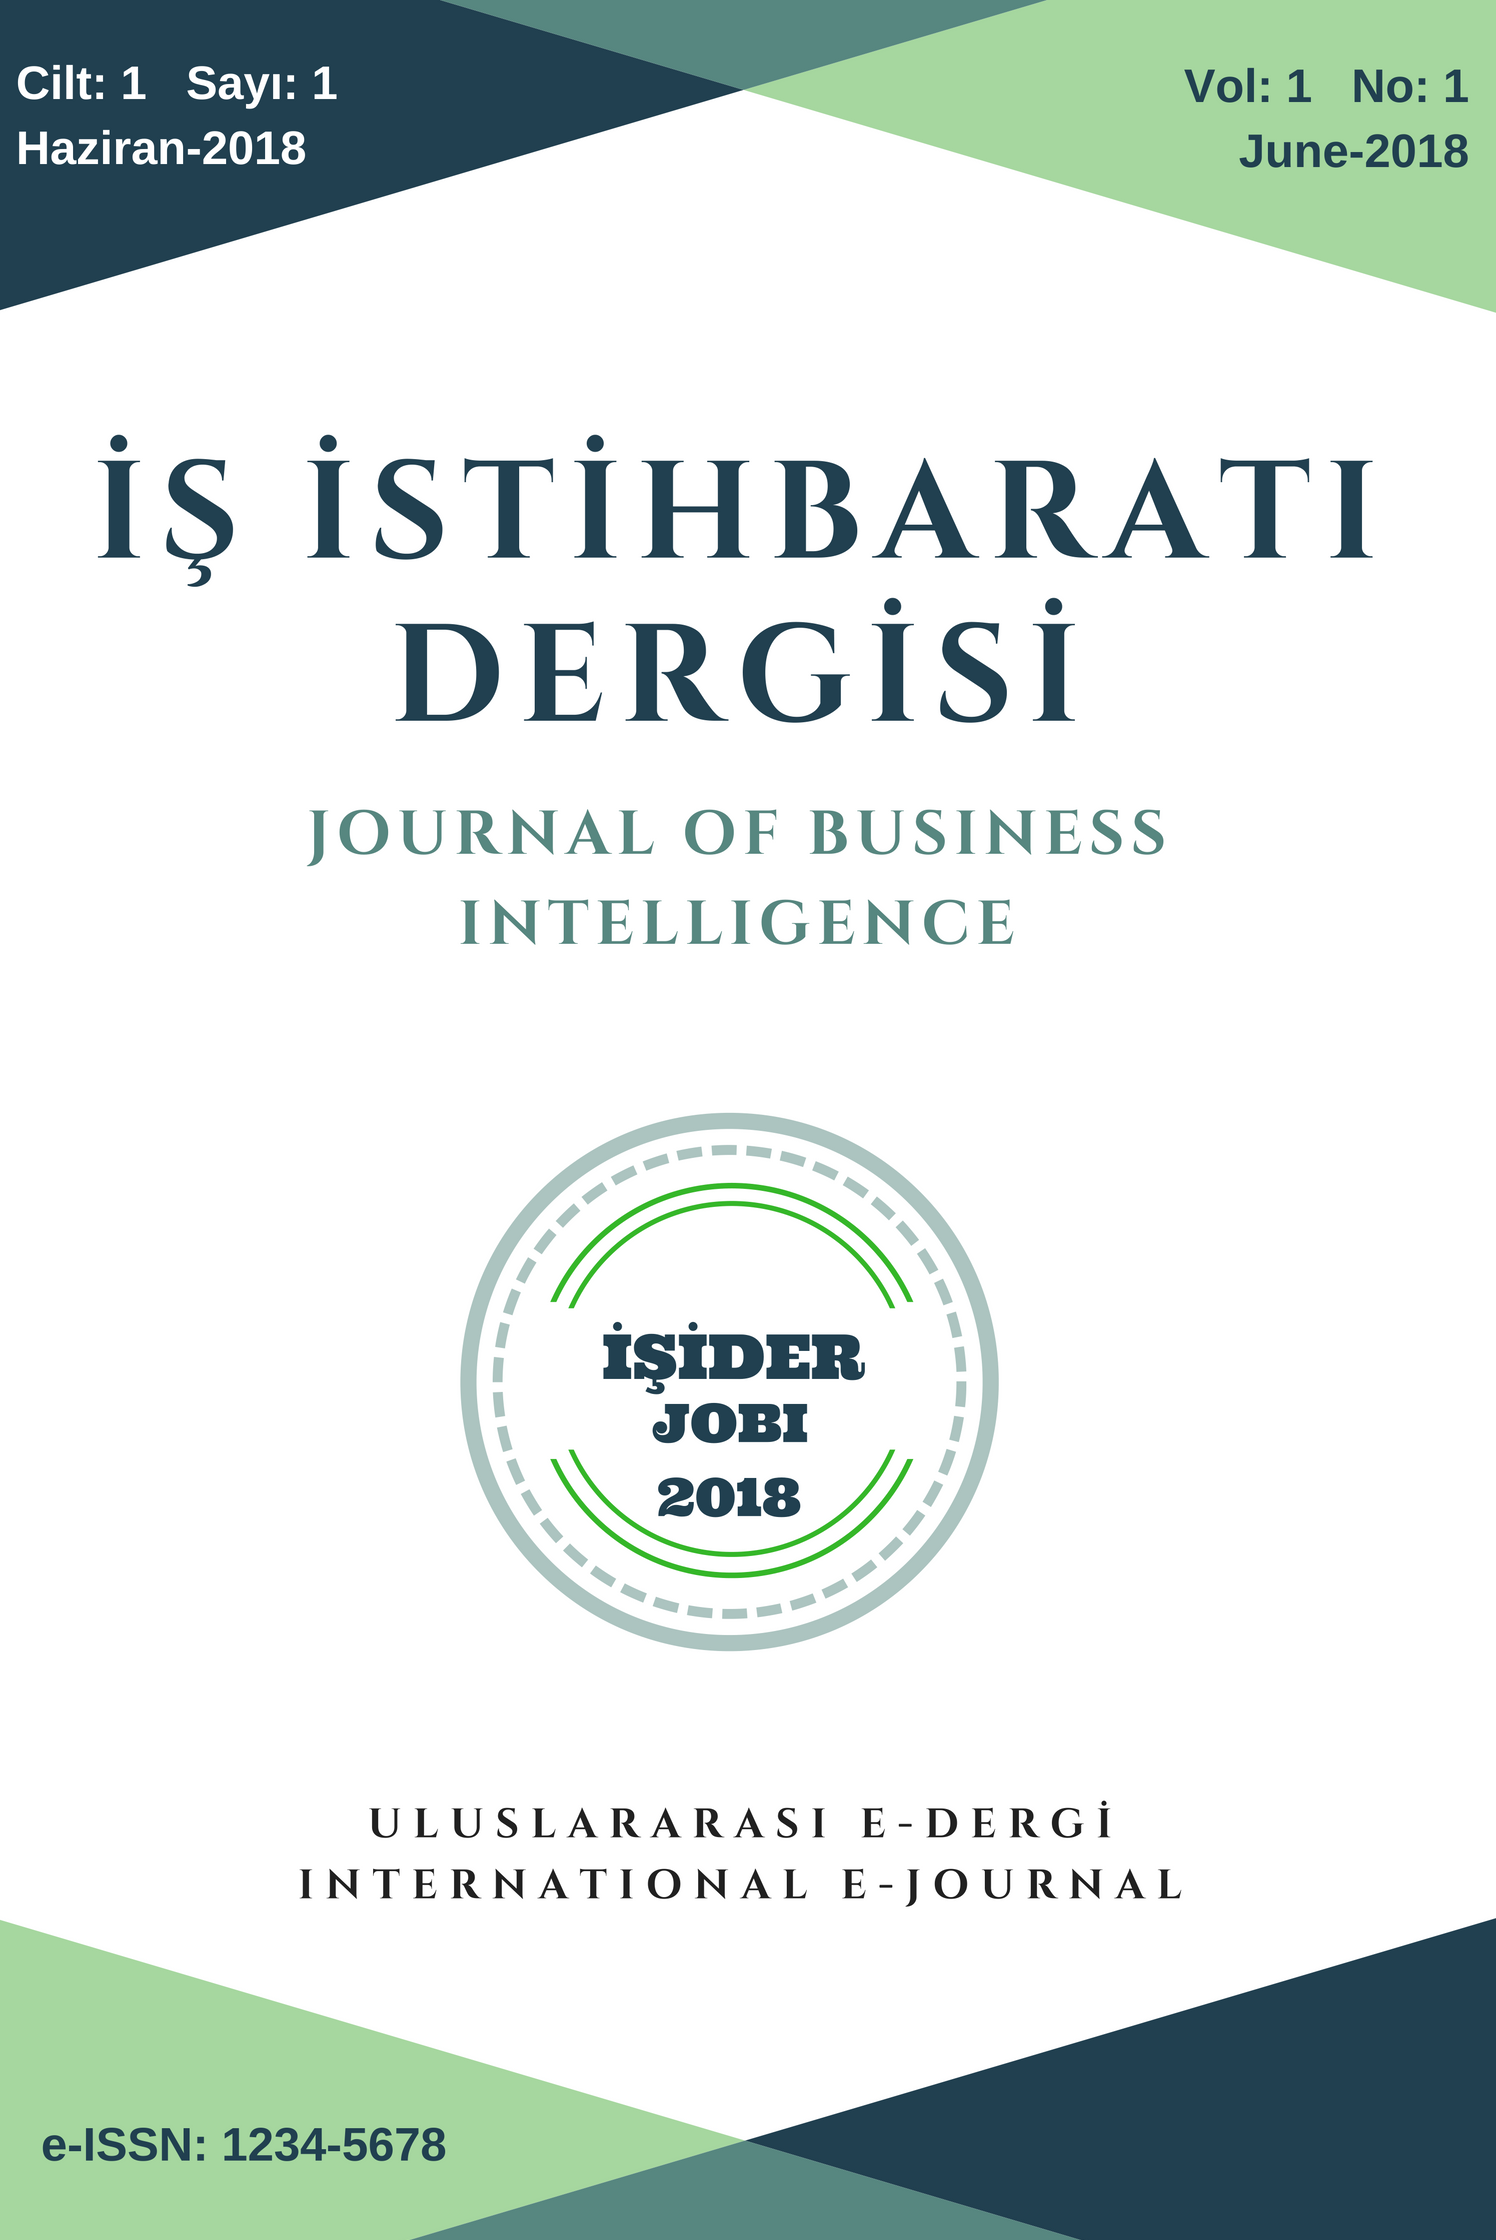 Journal of Business Intelligence